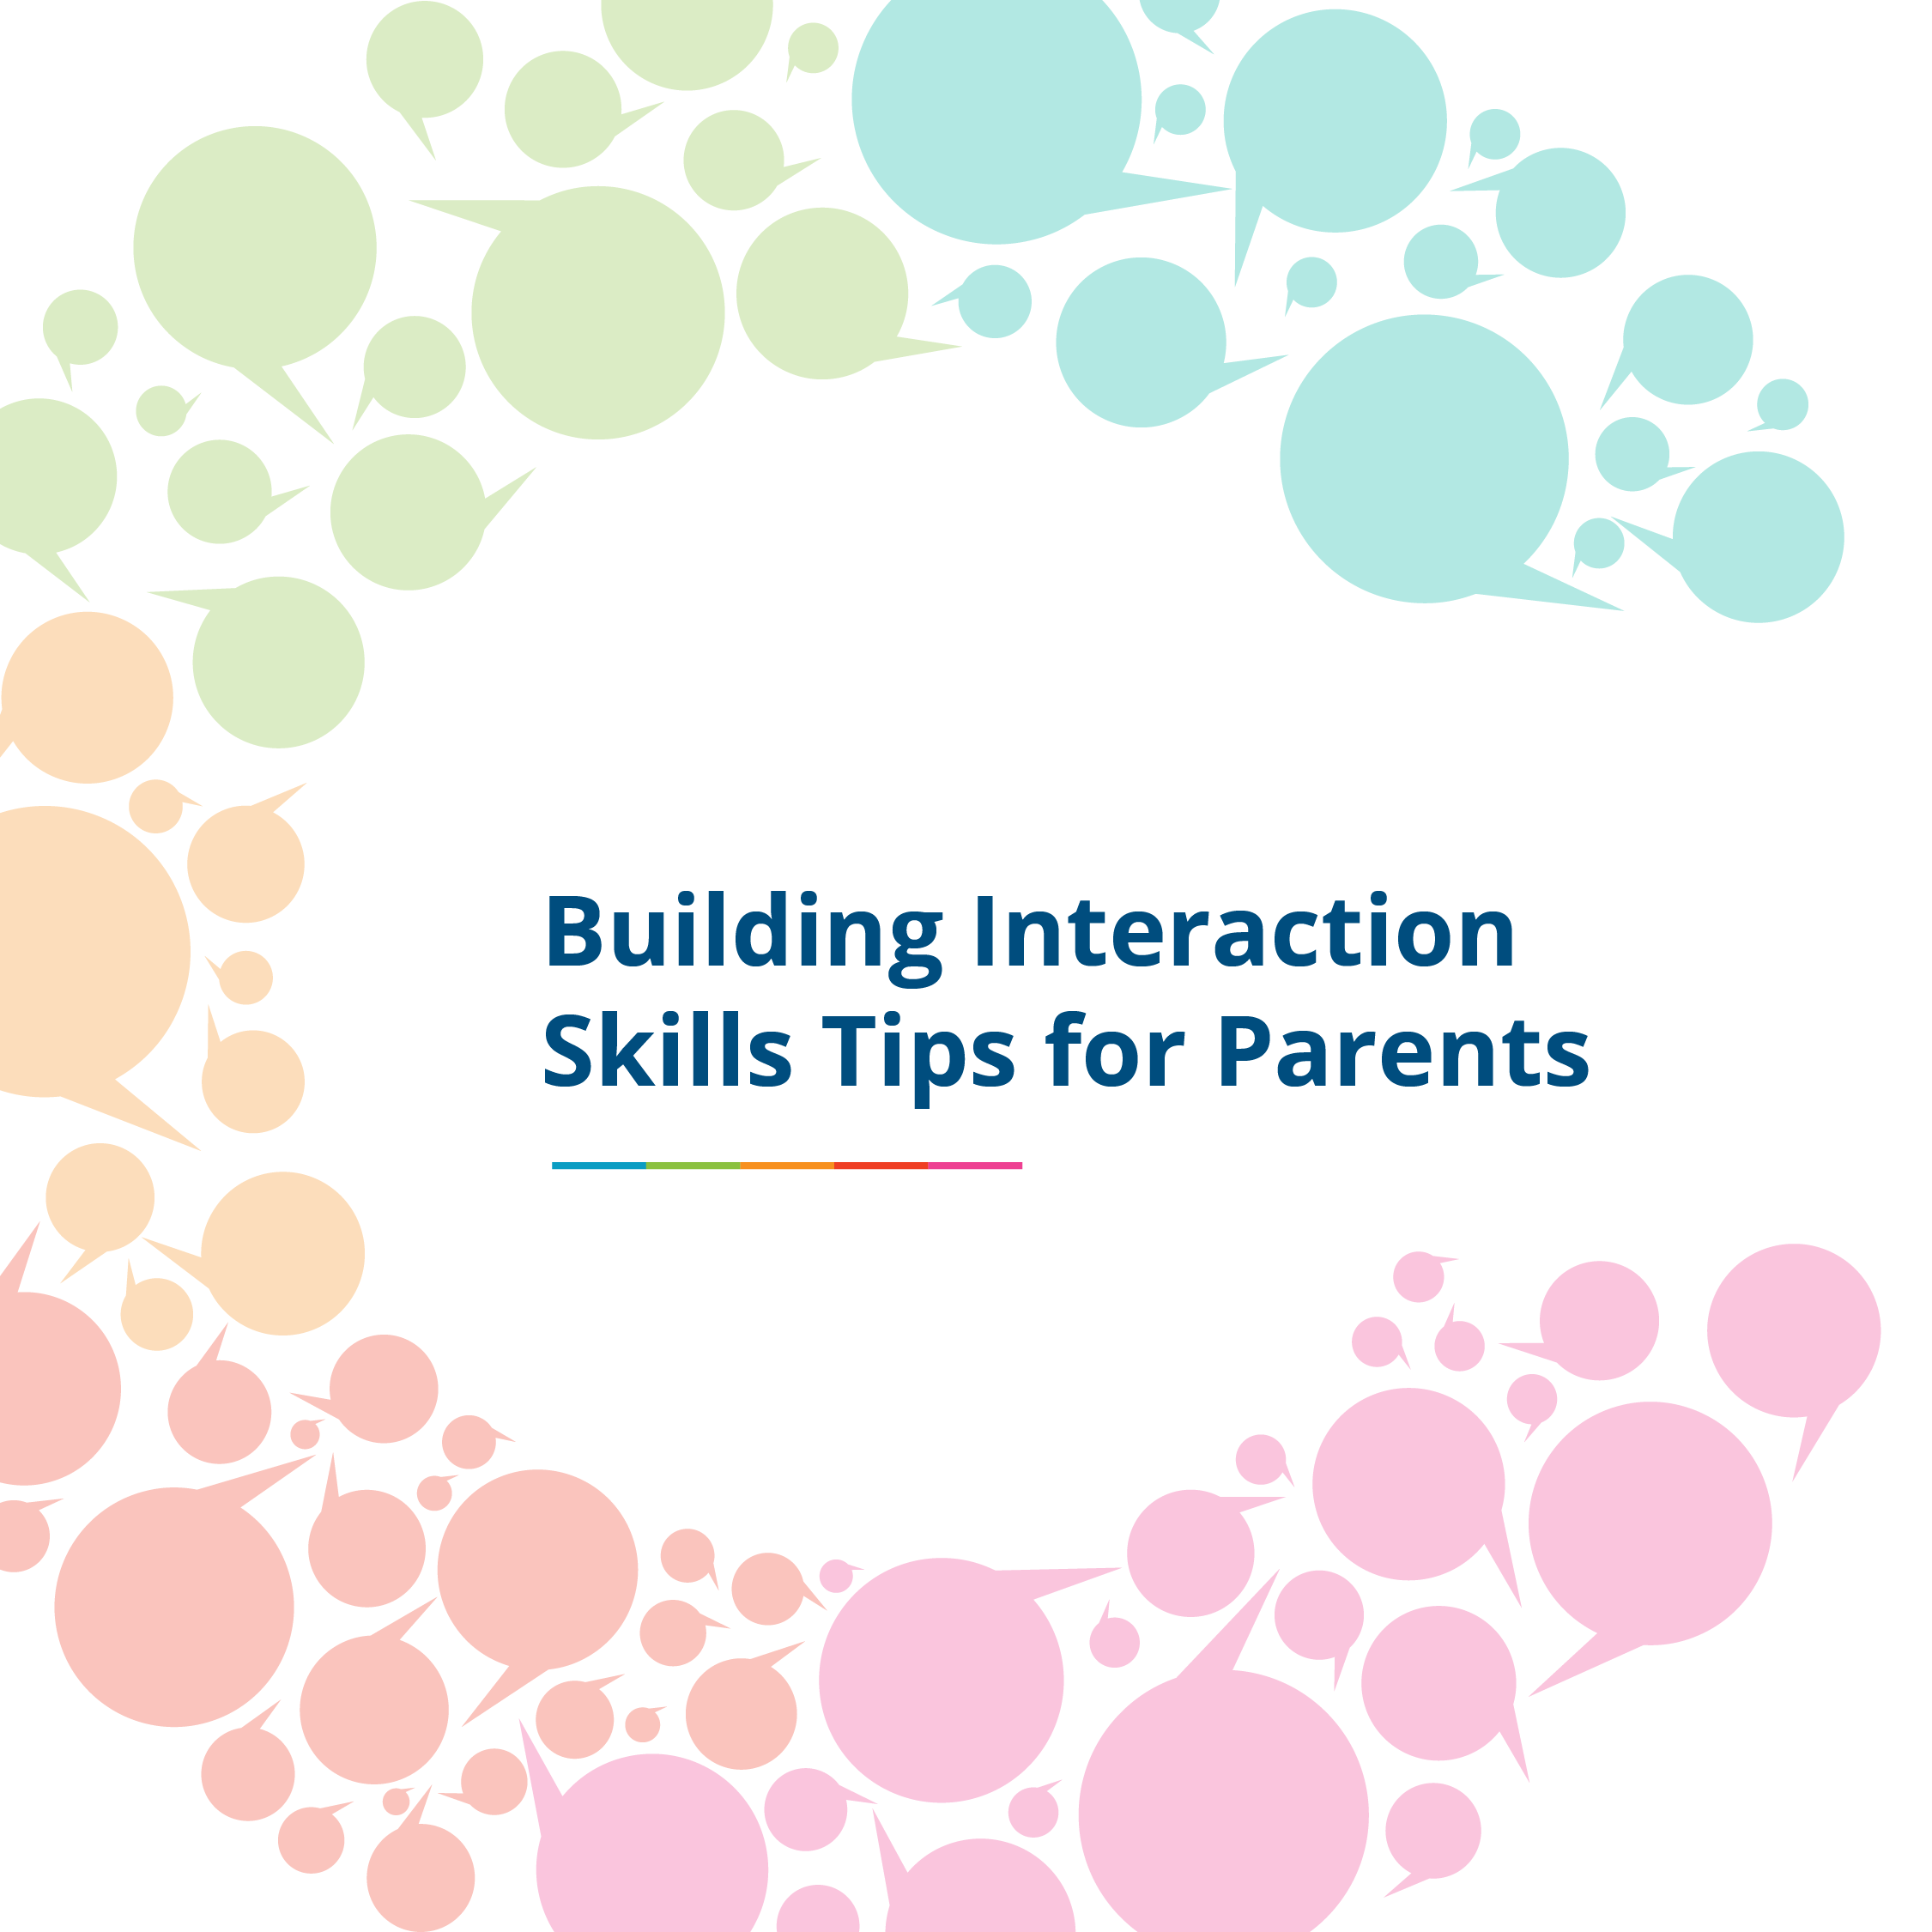 Building Interaction Skills Tips for Parents